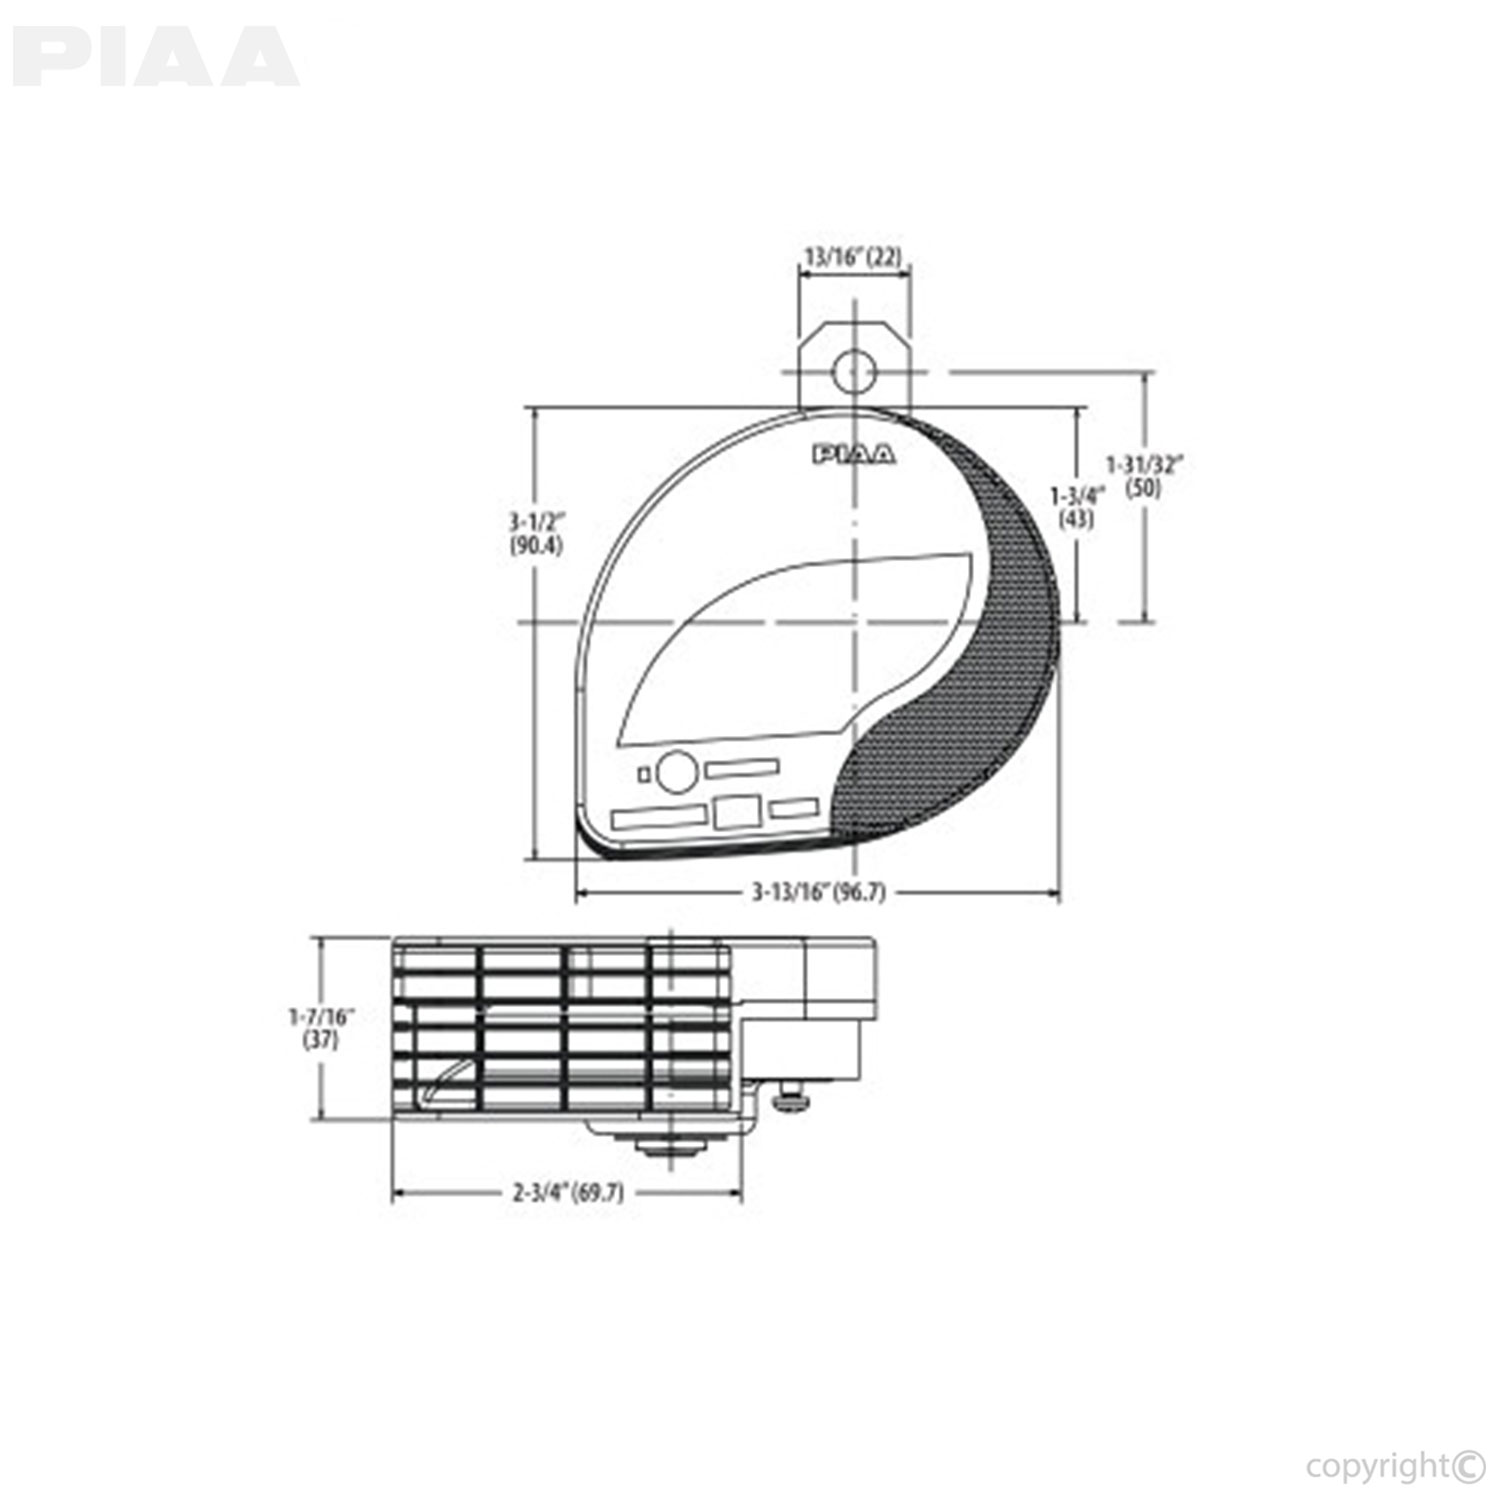 wiring diagram for piaa lights - wiring diagram and schematics piaa 510 wiring diagram